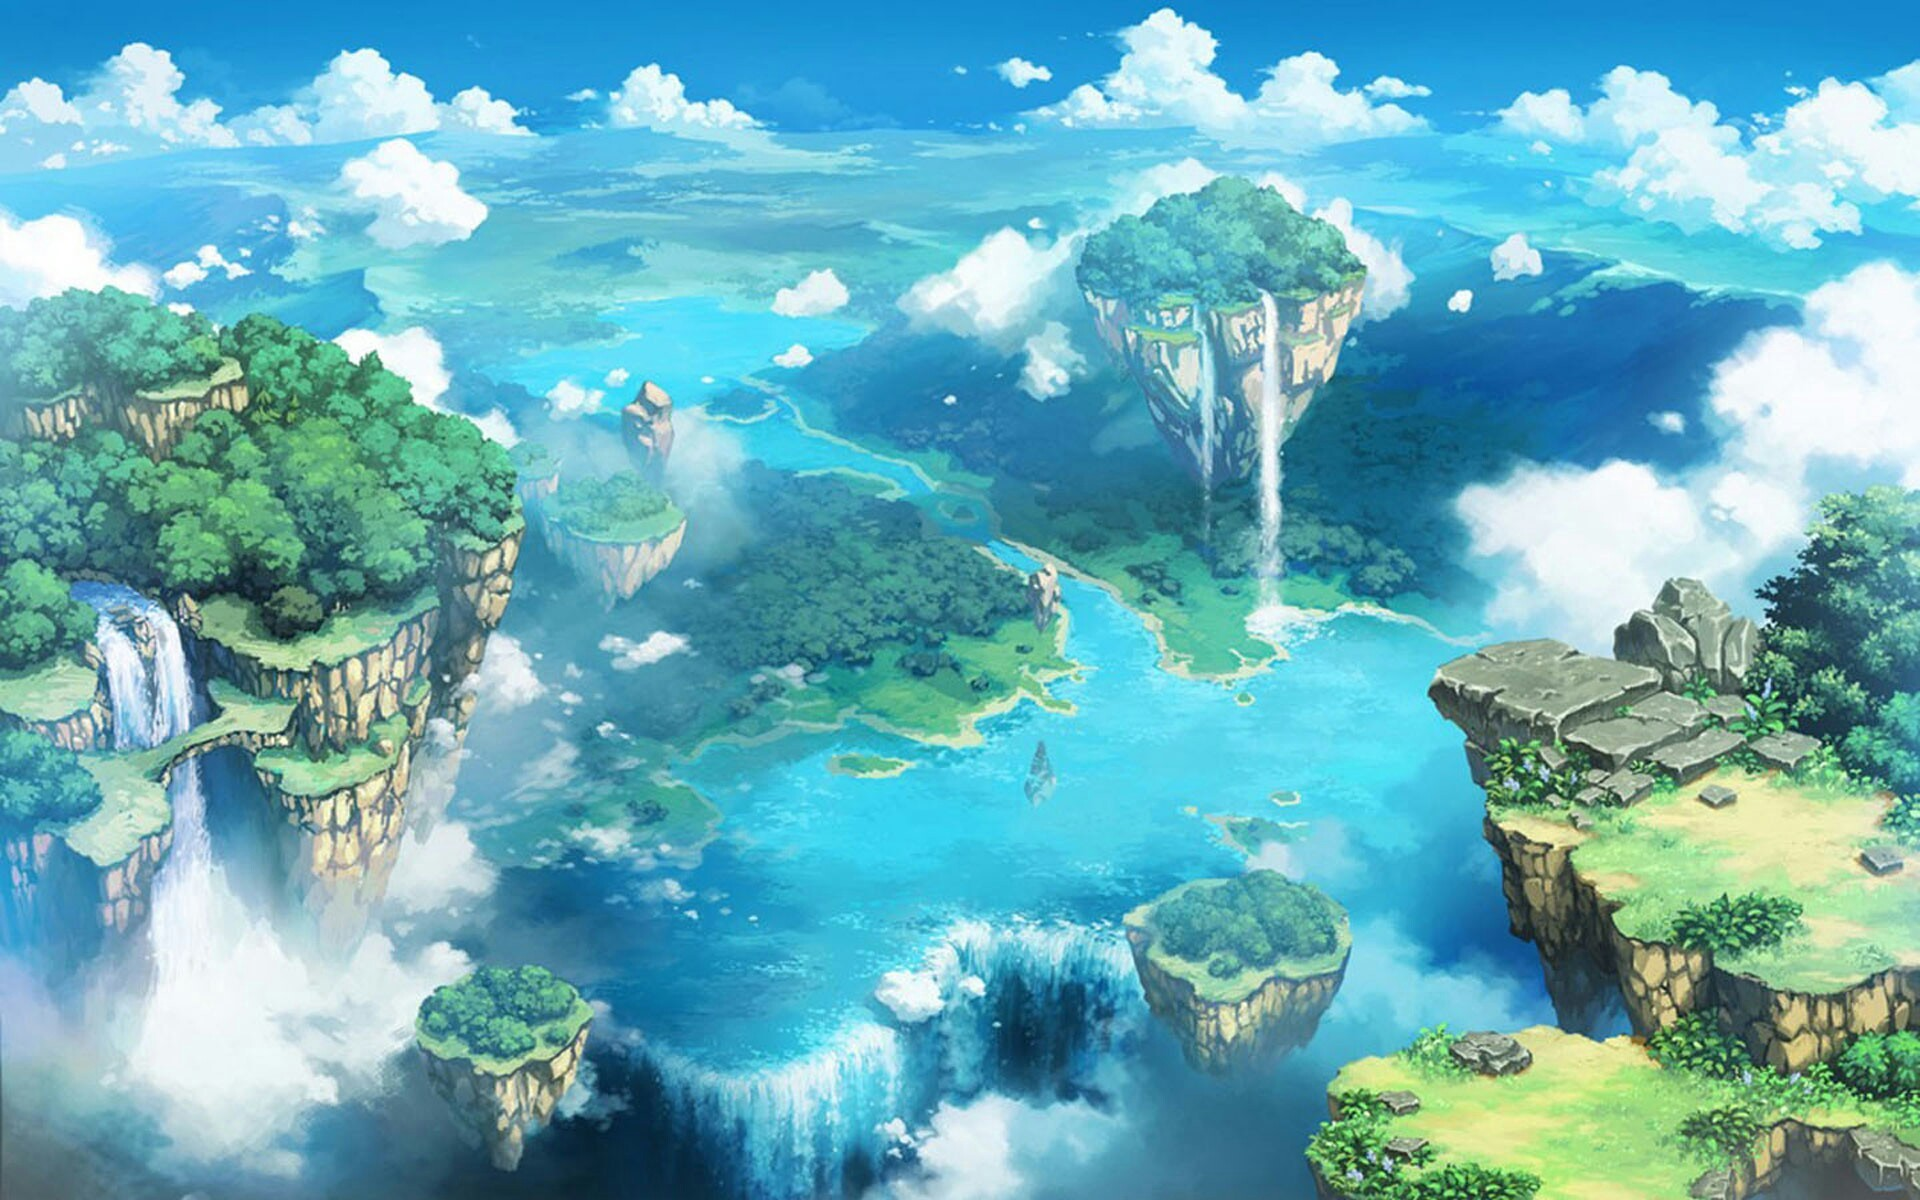 Aesthetic Anime Background Hd Anime Wallpapers